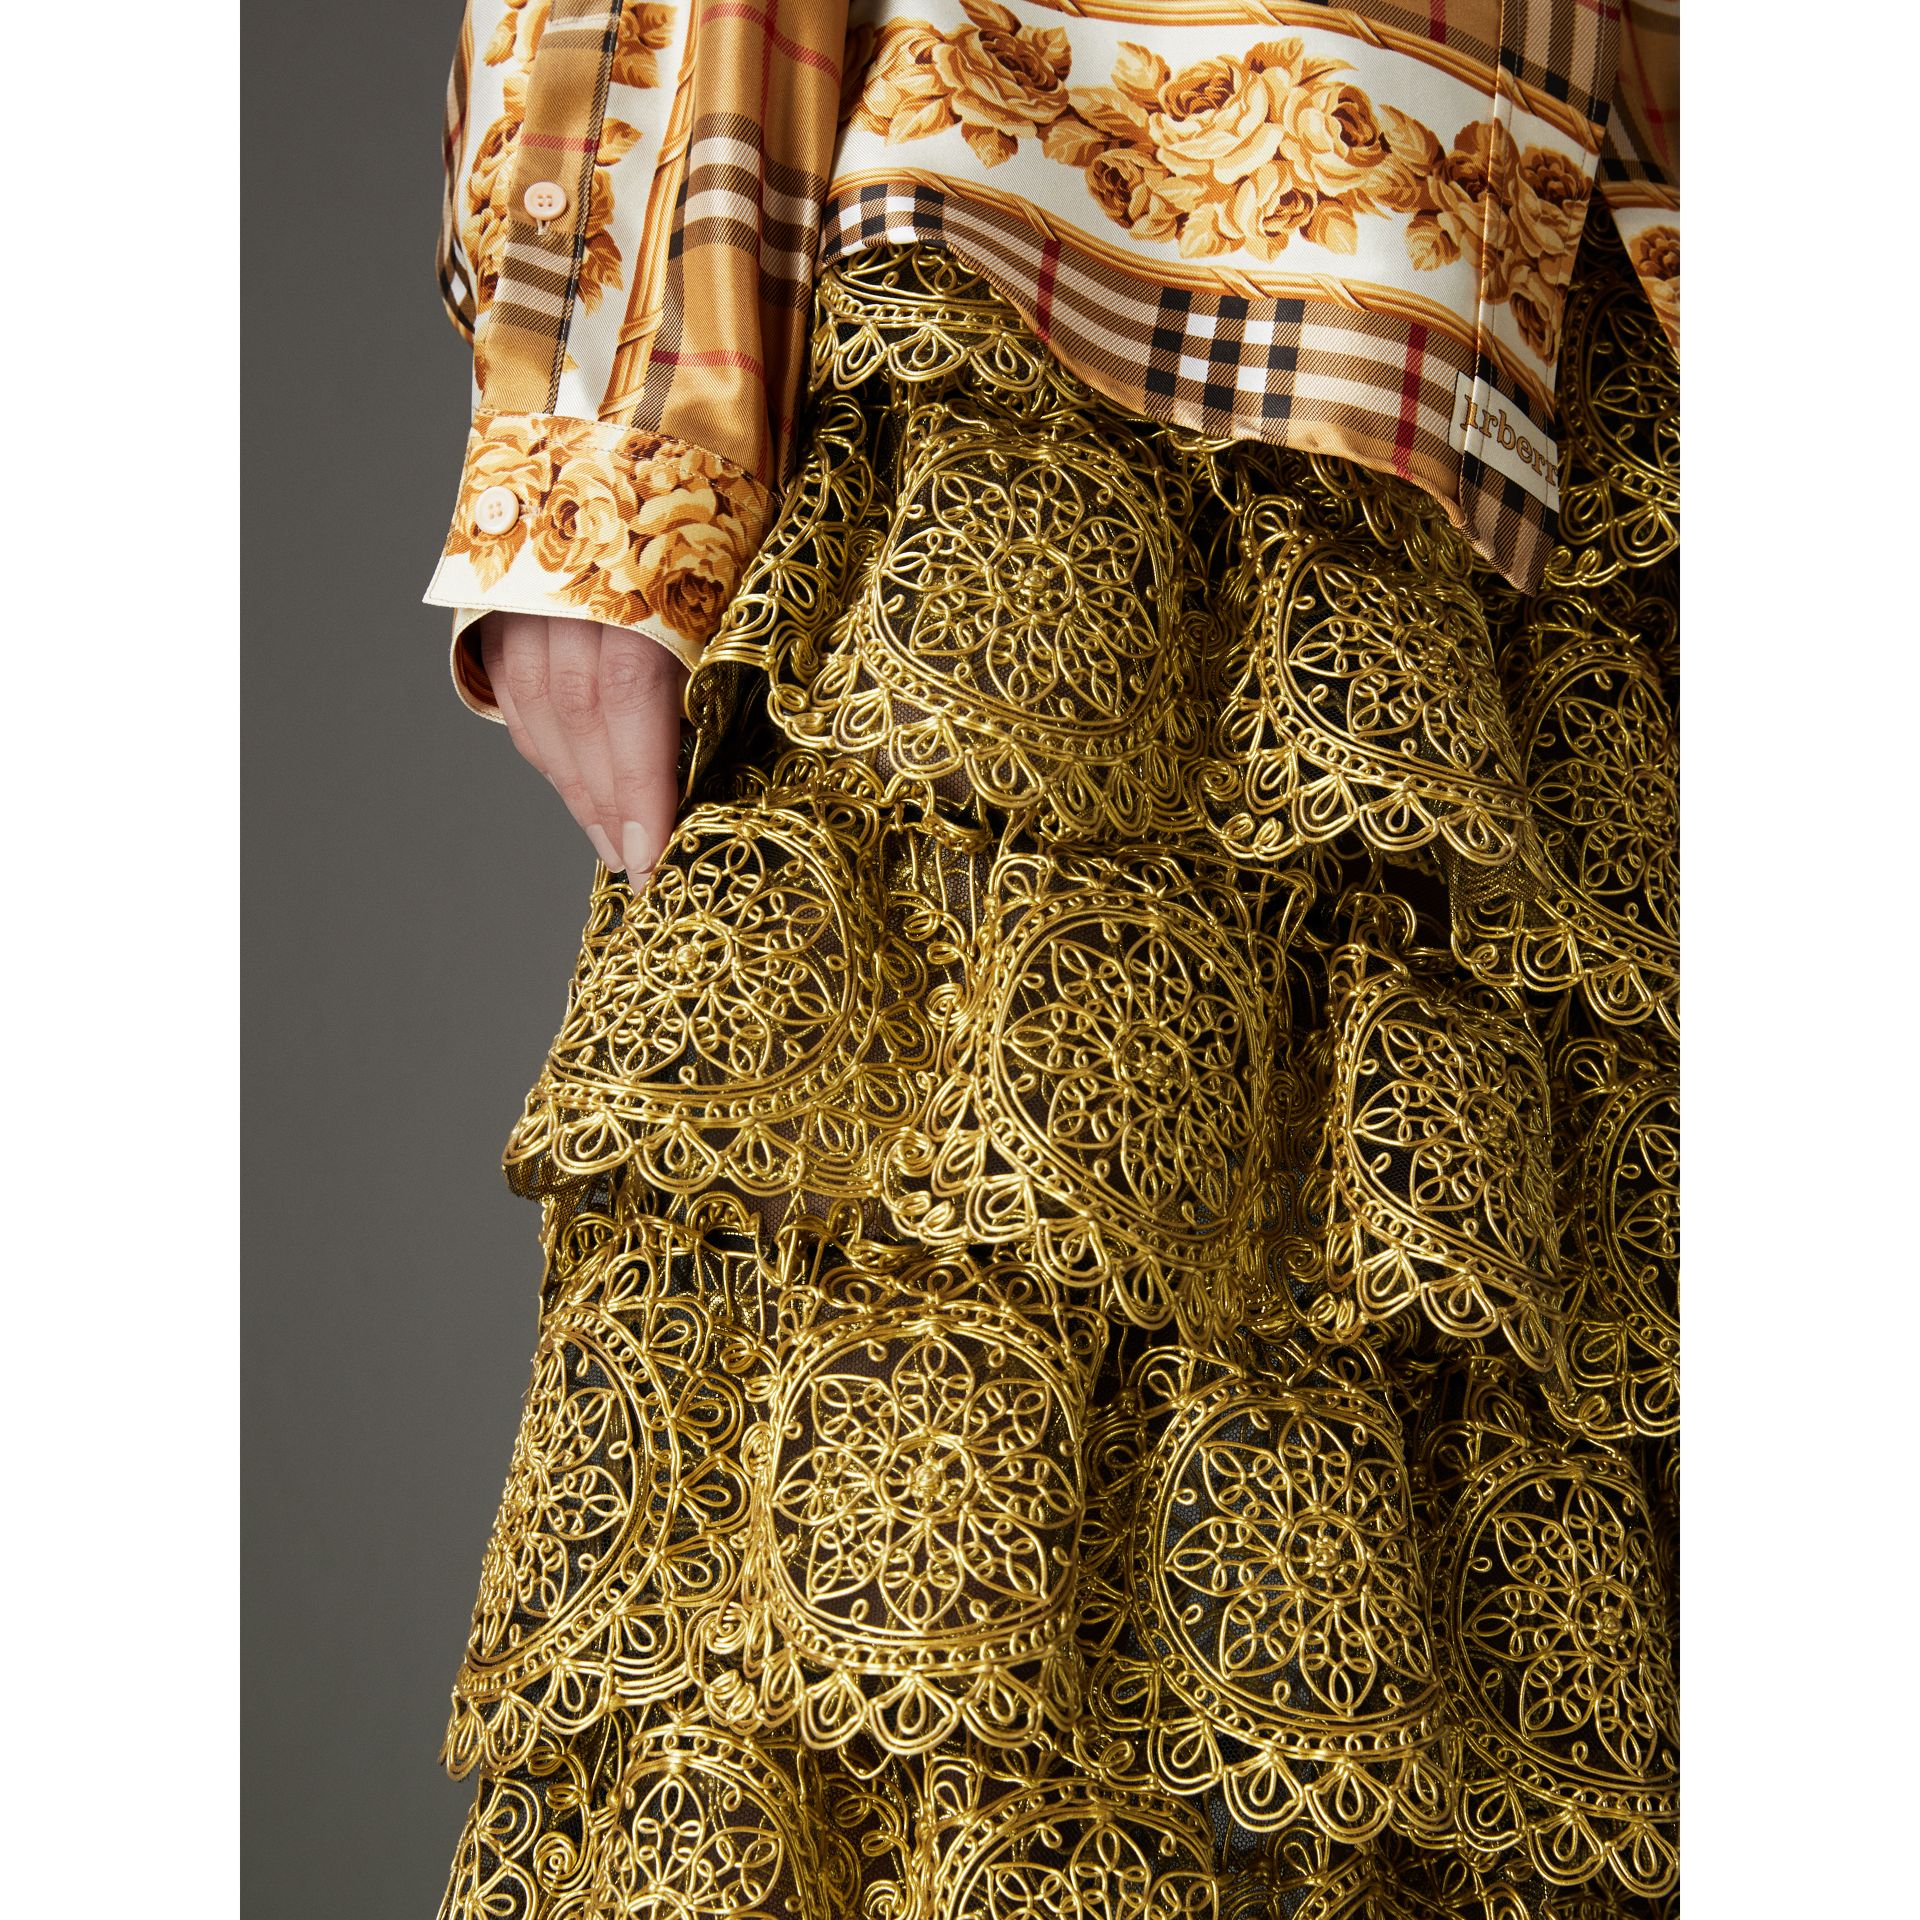 Tiered Silicone Lace Skirt in Gold - Women | Burberry Singapore - gallery image 1